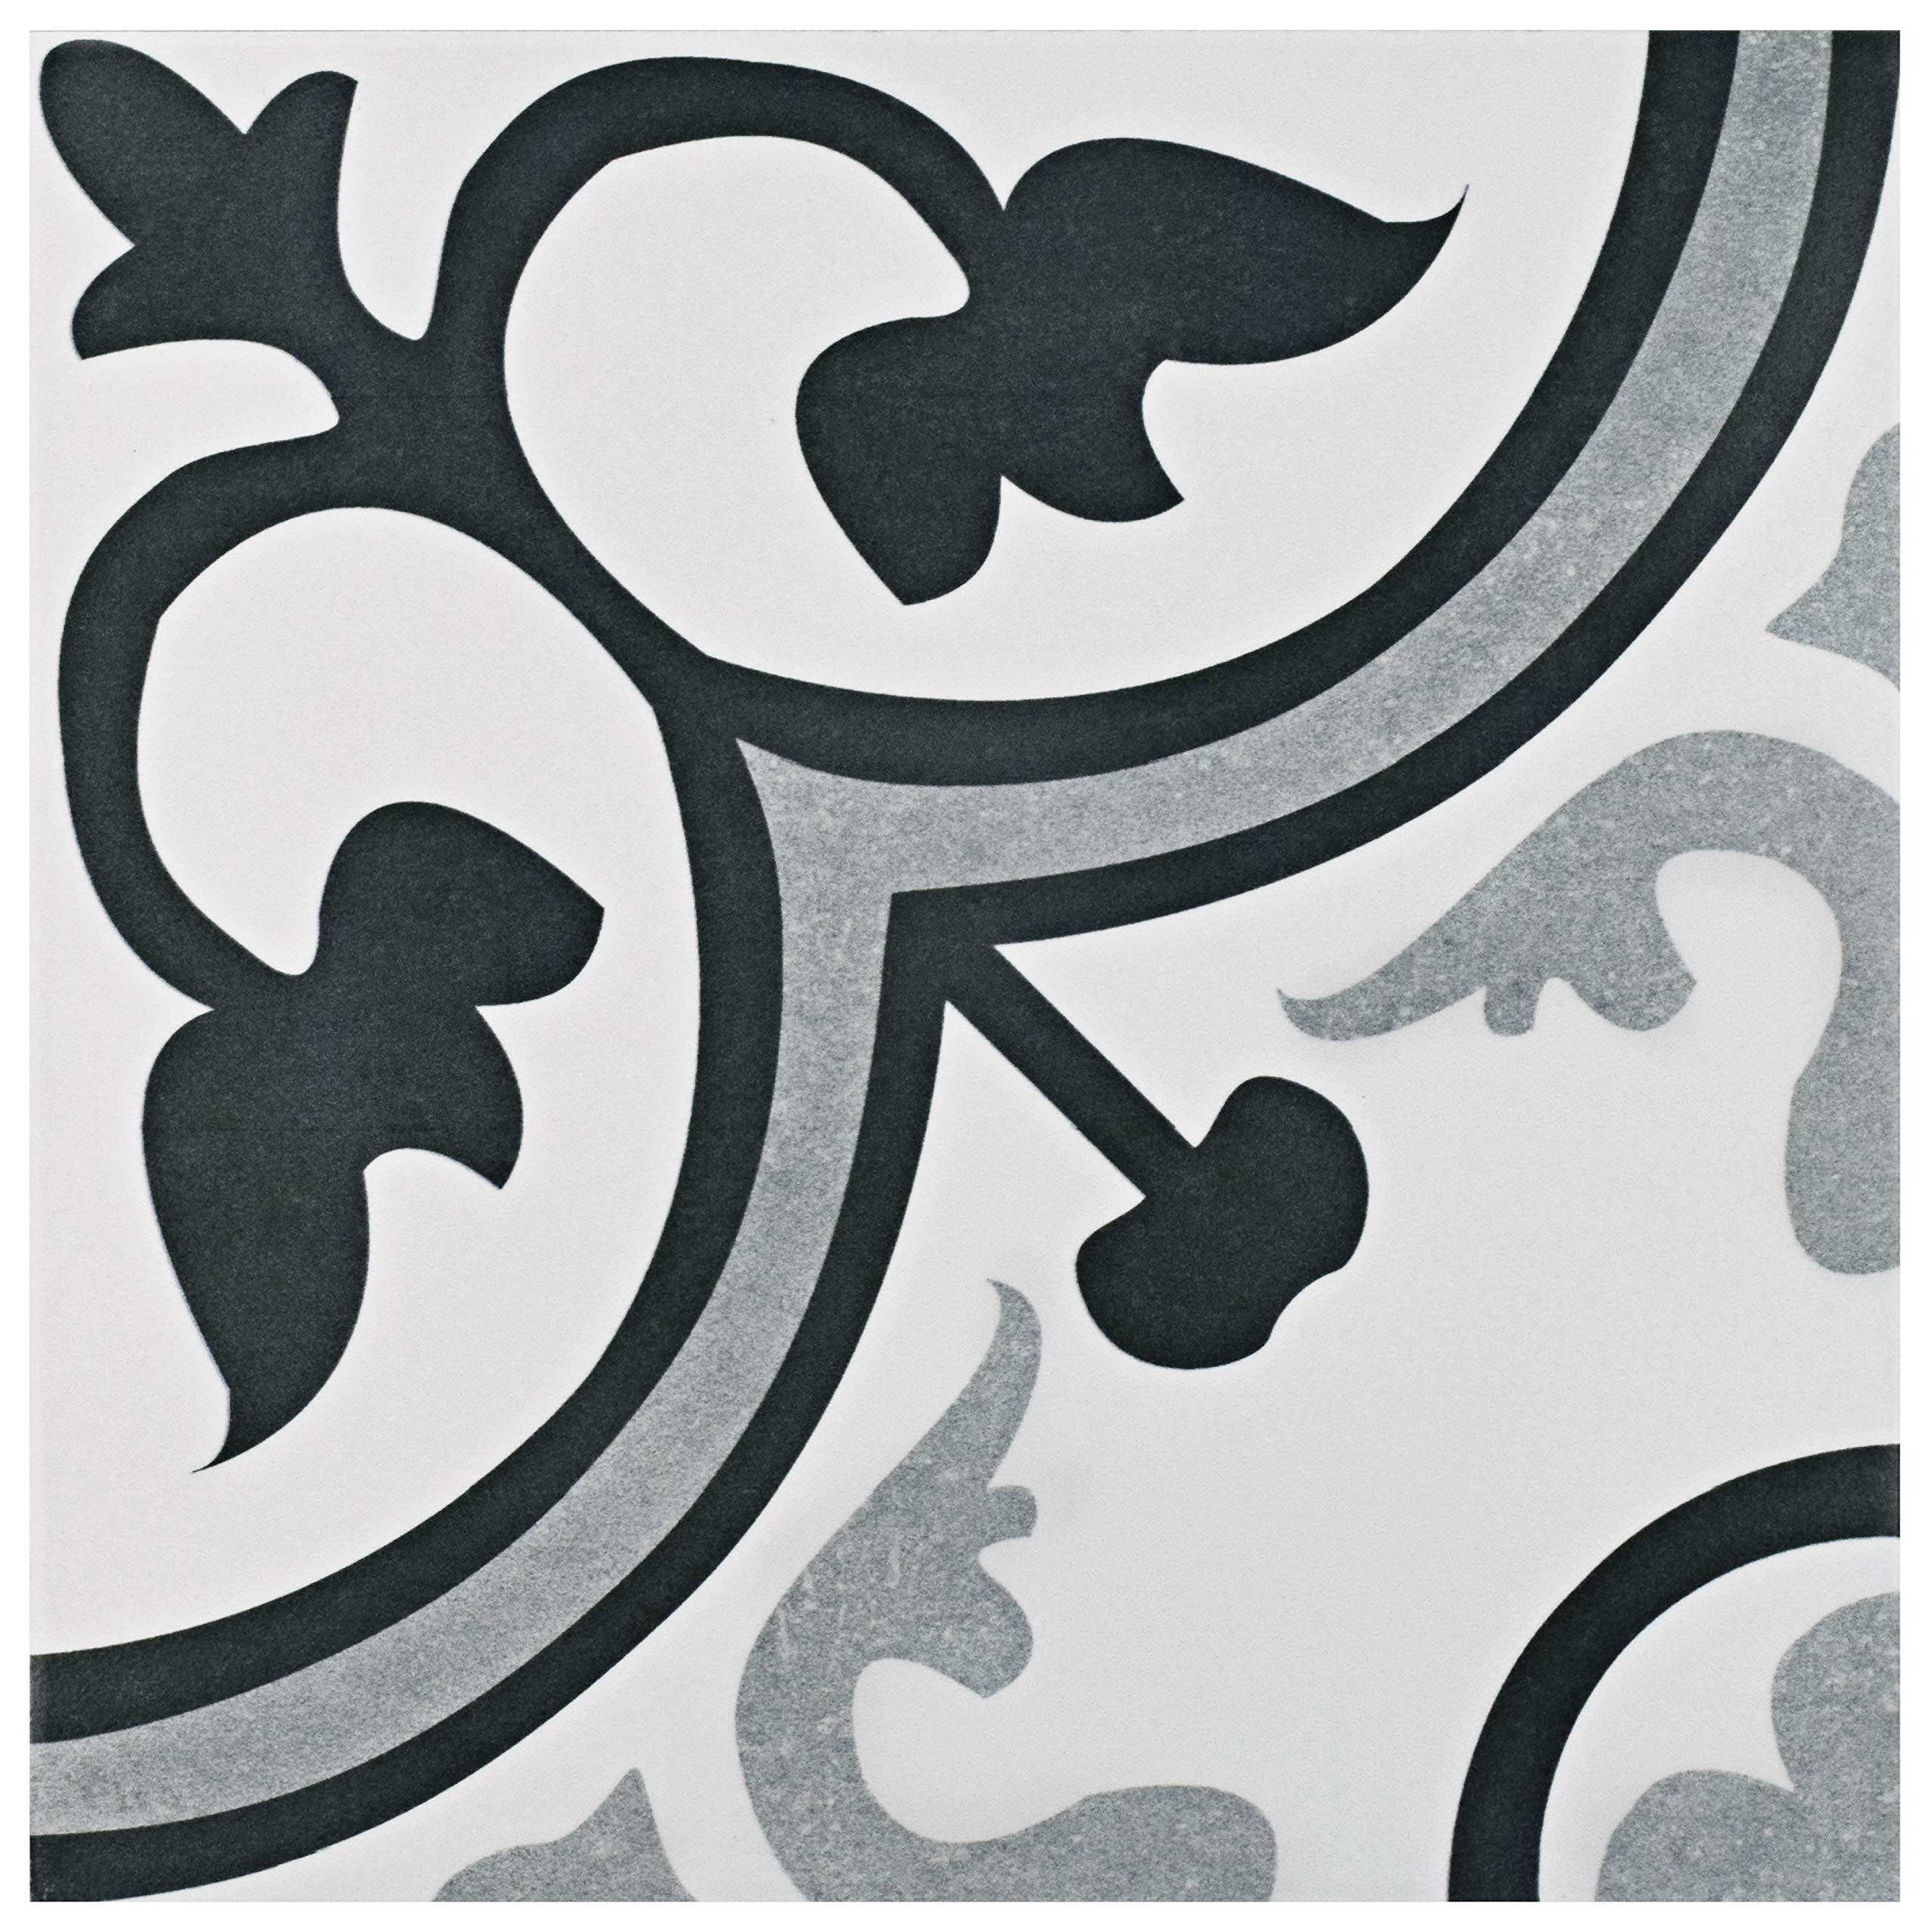 SomerTile FCG12AMB Canton Ceramic Floor and Wall Tile, 12.38'' x 12.38, Pack of 10 by SOMERTILE